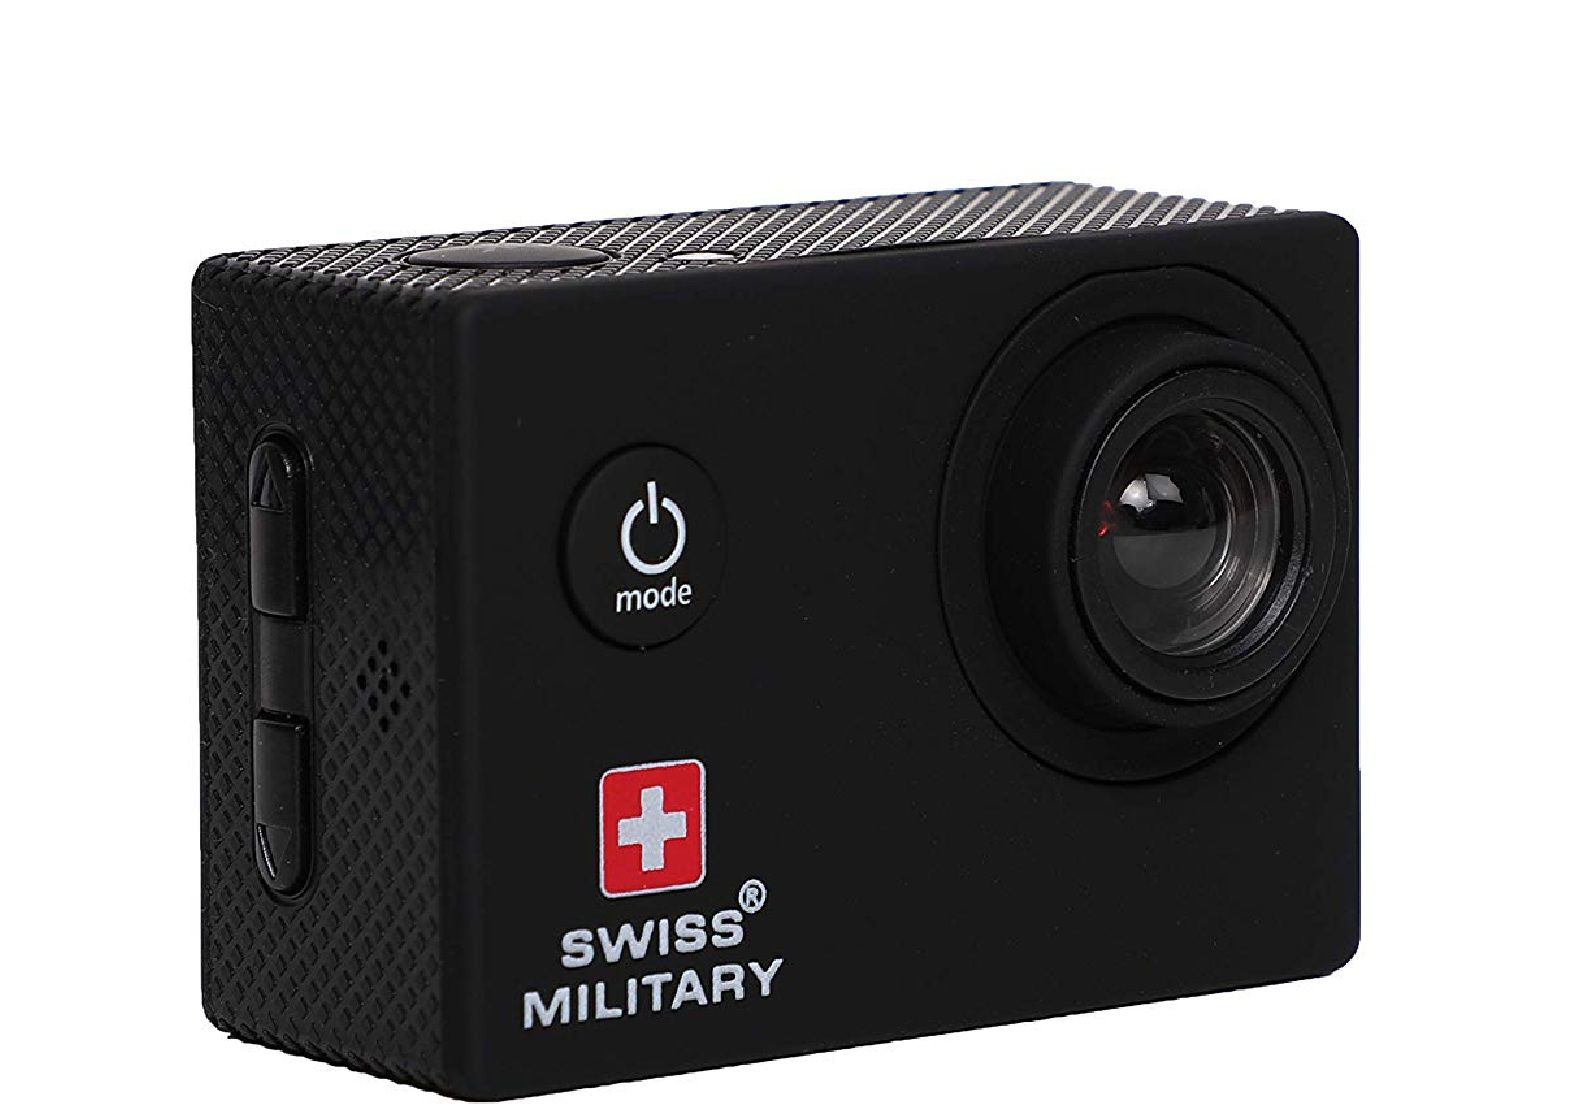 Swiss Military 12.1 MP Action Camera